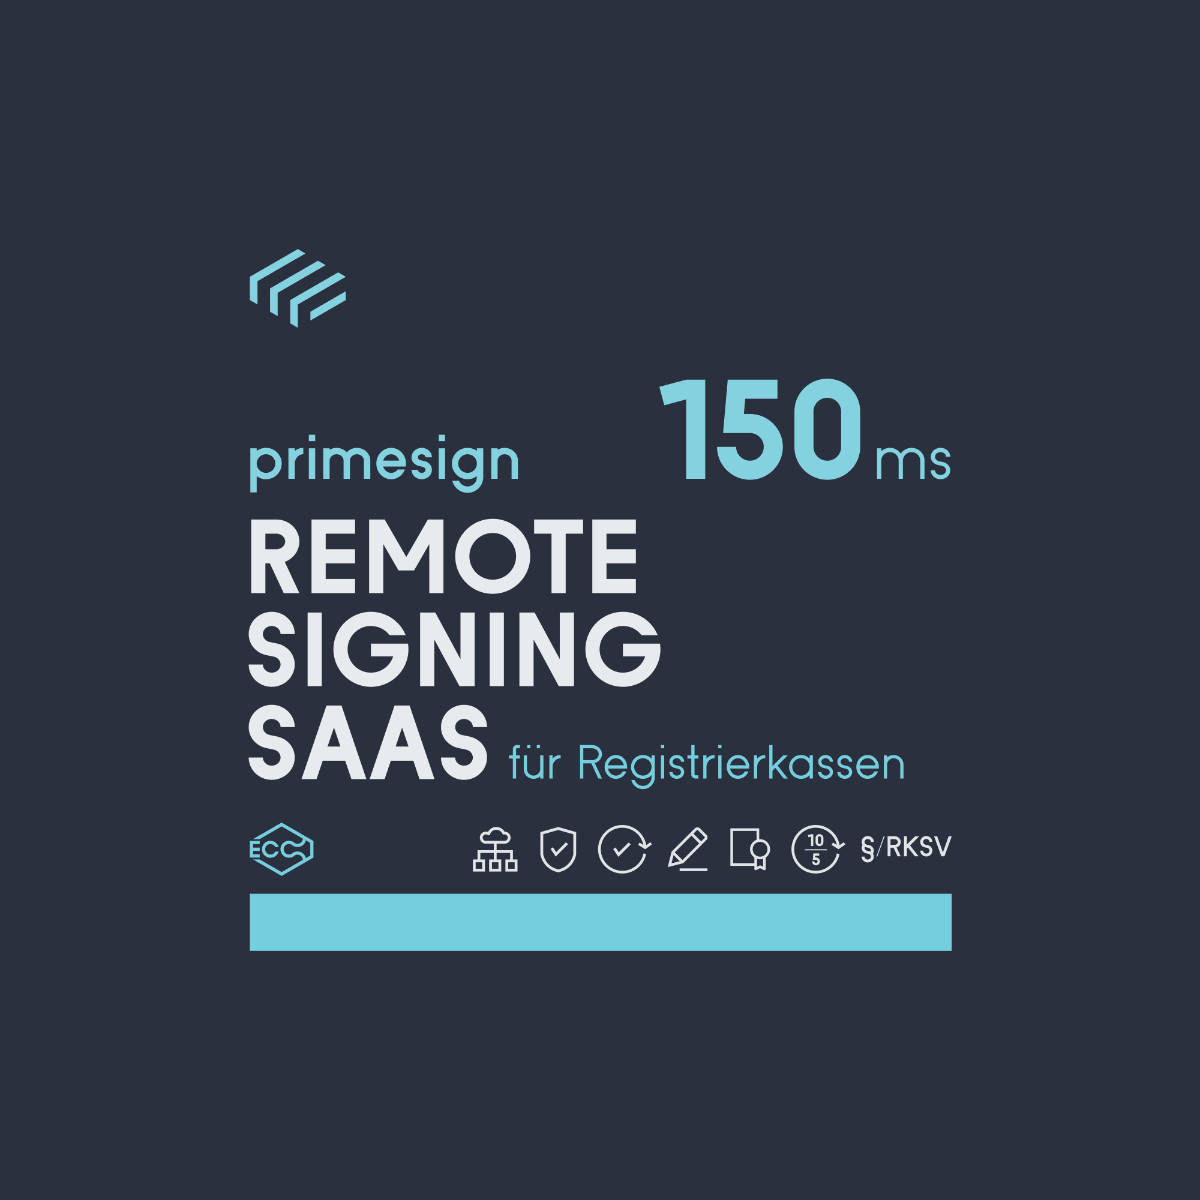 RKSV Remote Signing 150 ms mit 8-18 Support